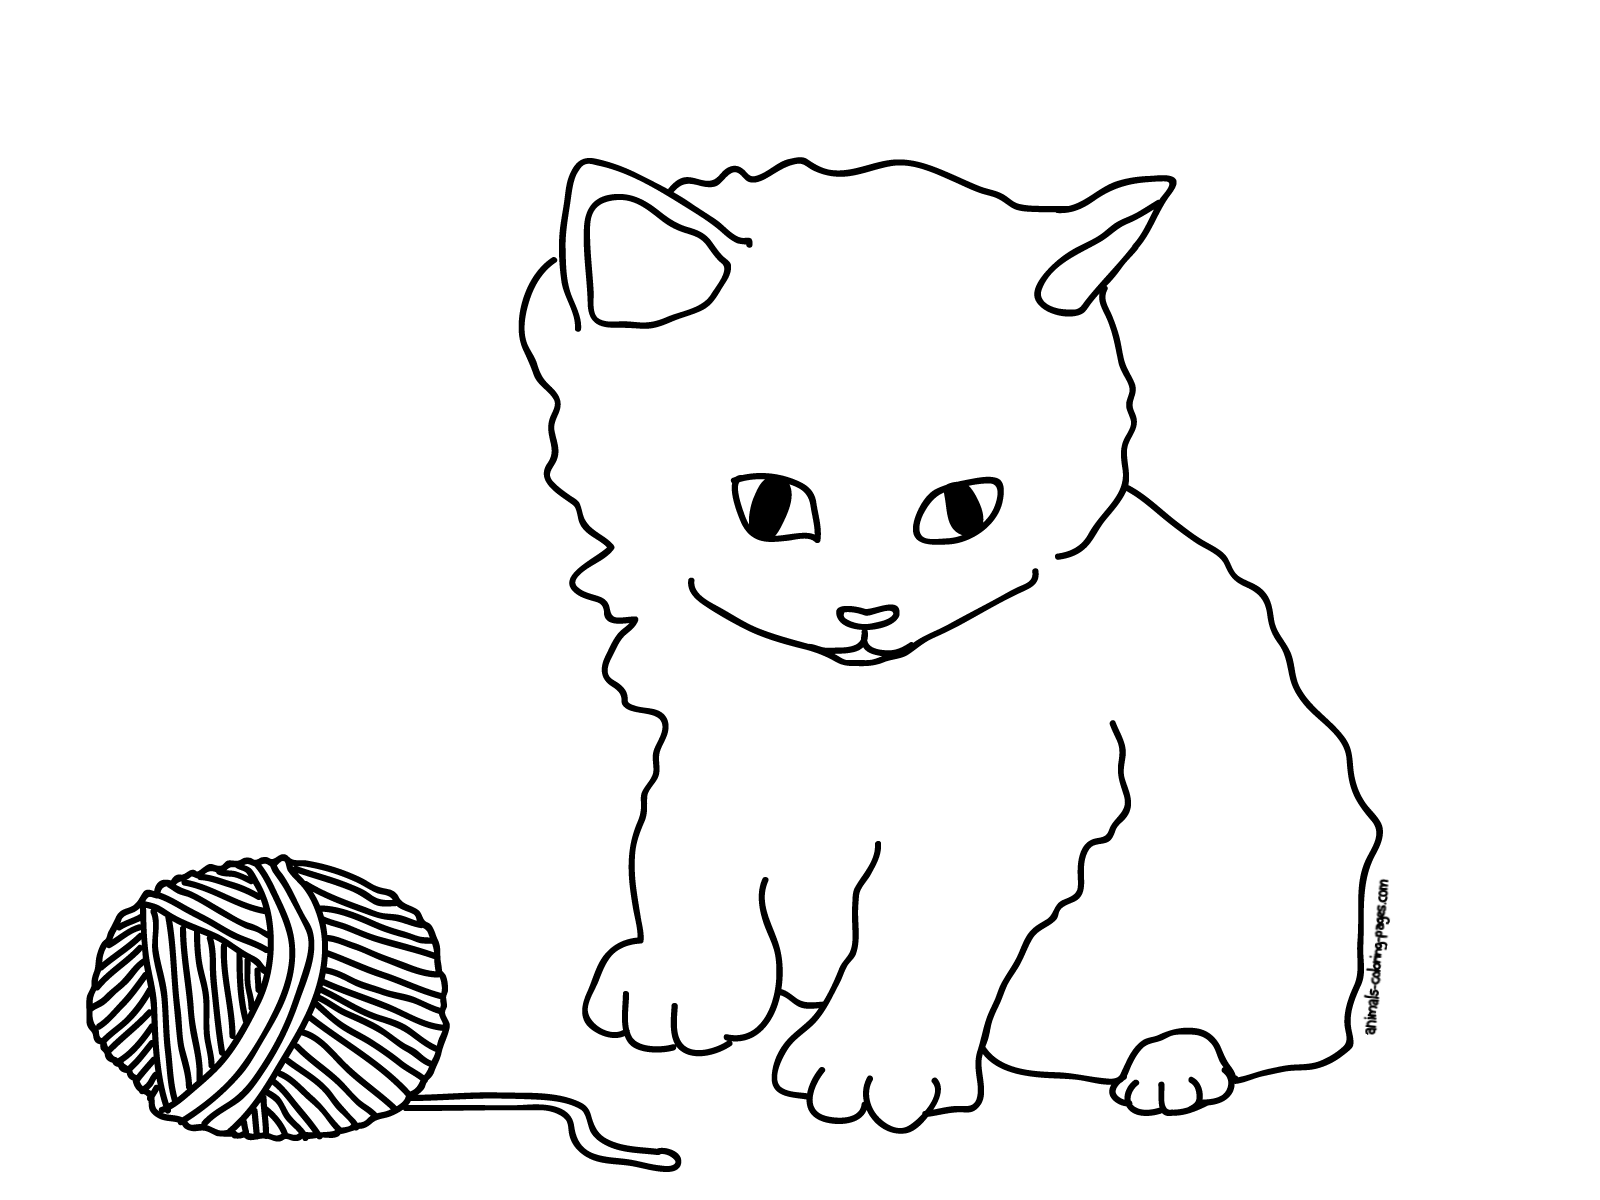 coloring pages of kittens kitten coloring pages best coloring pages for kids coloring pages kittens of